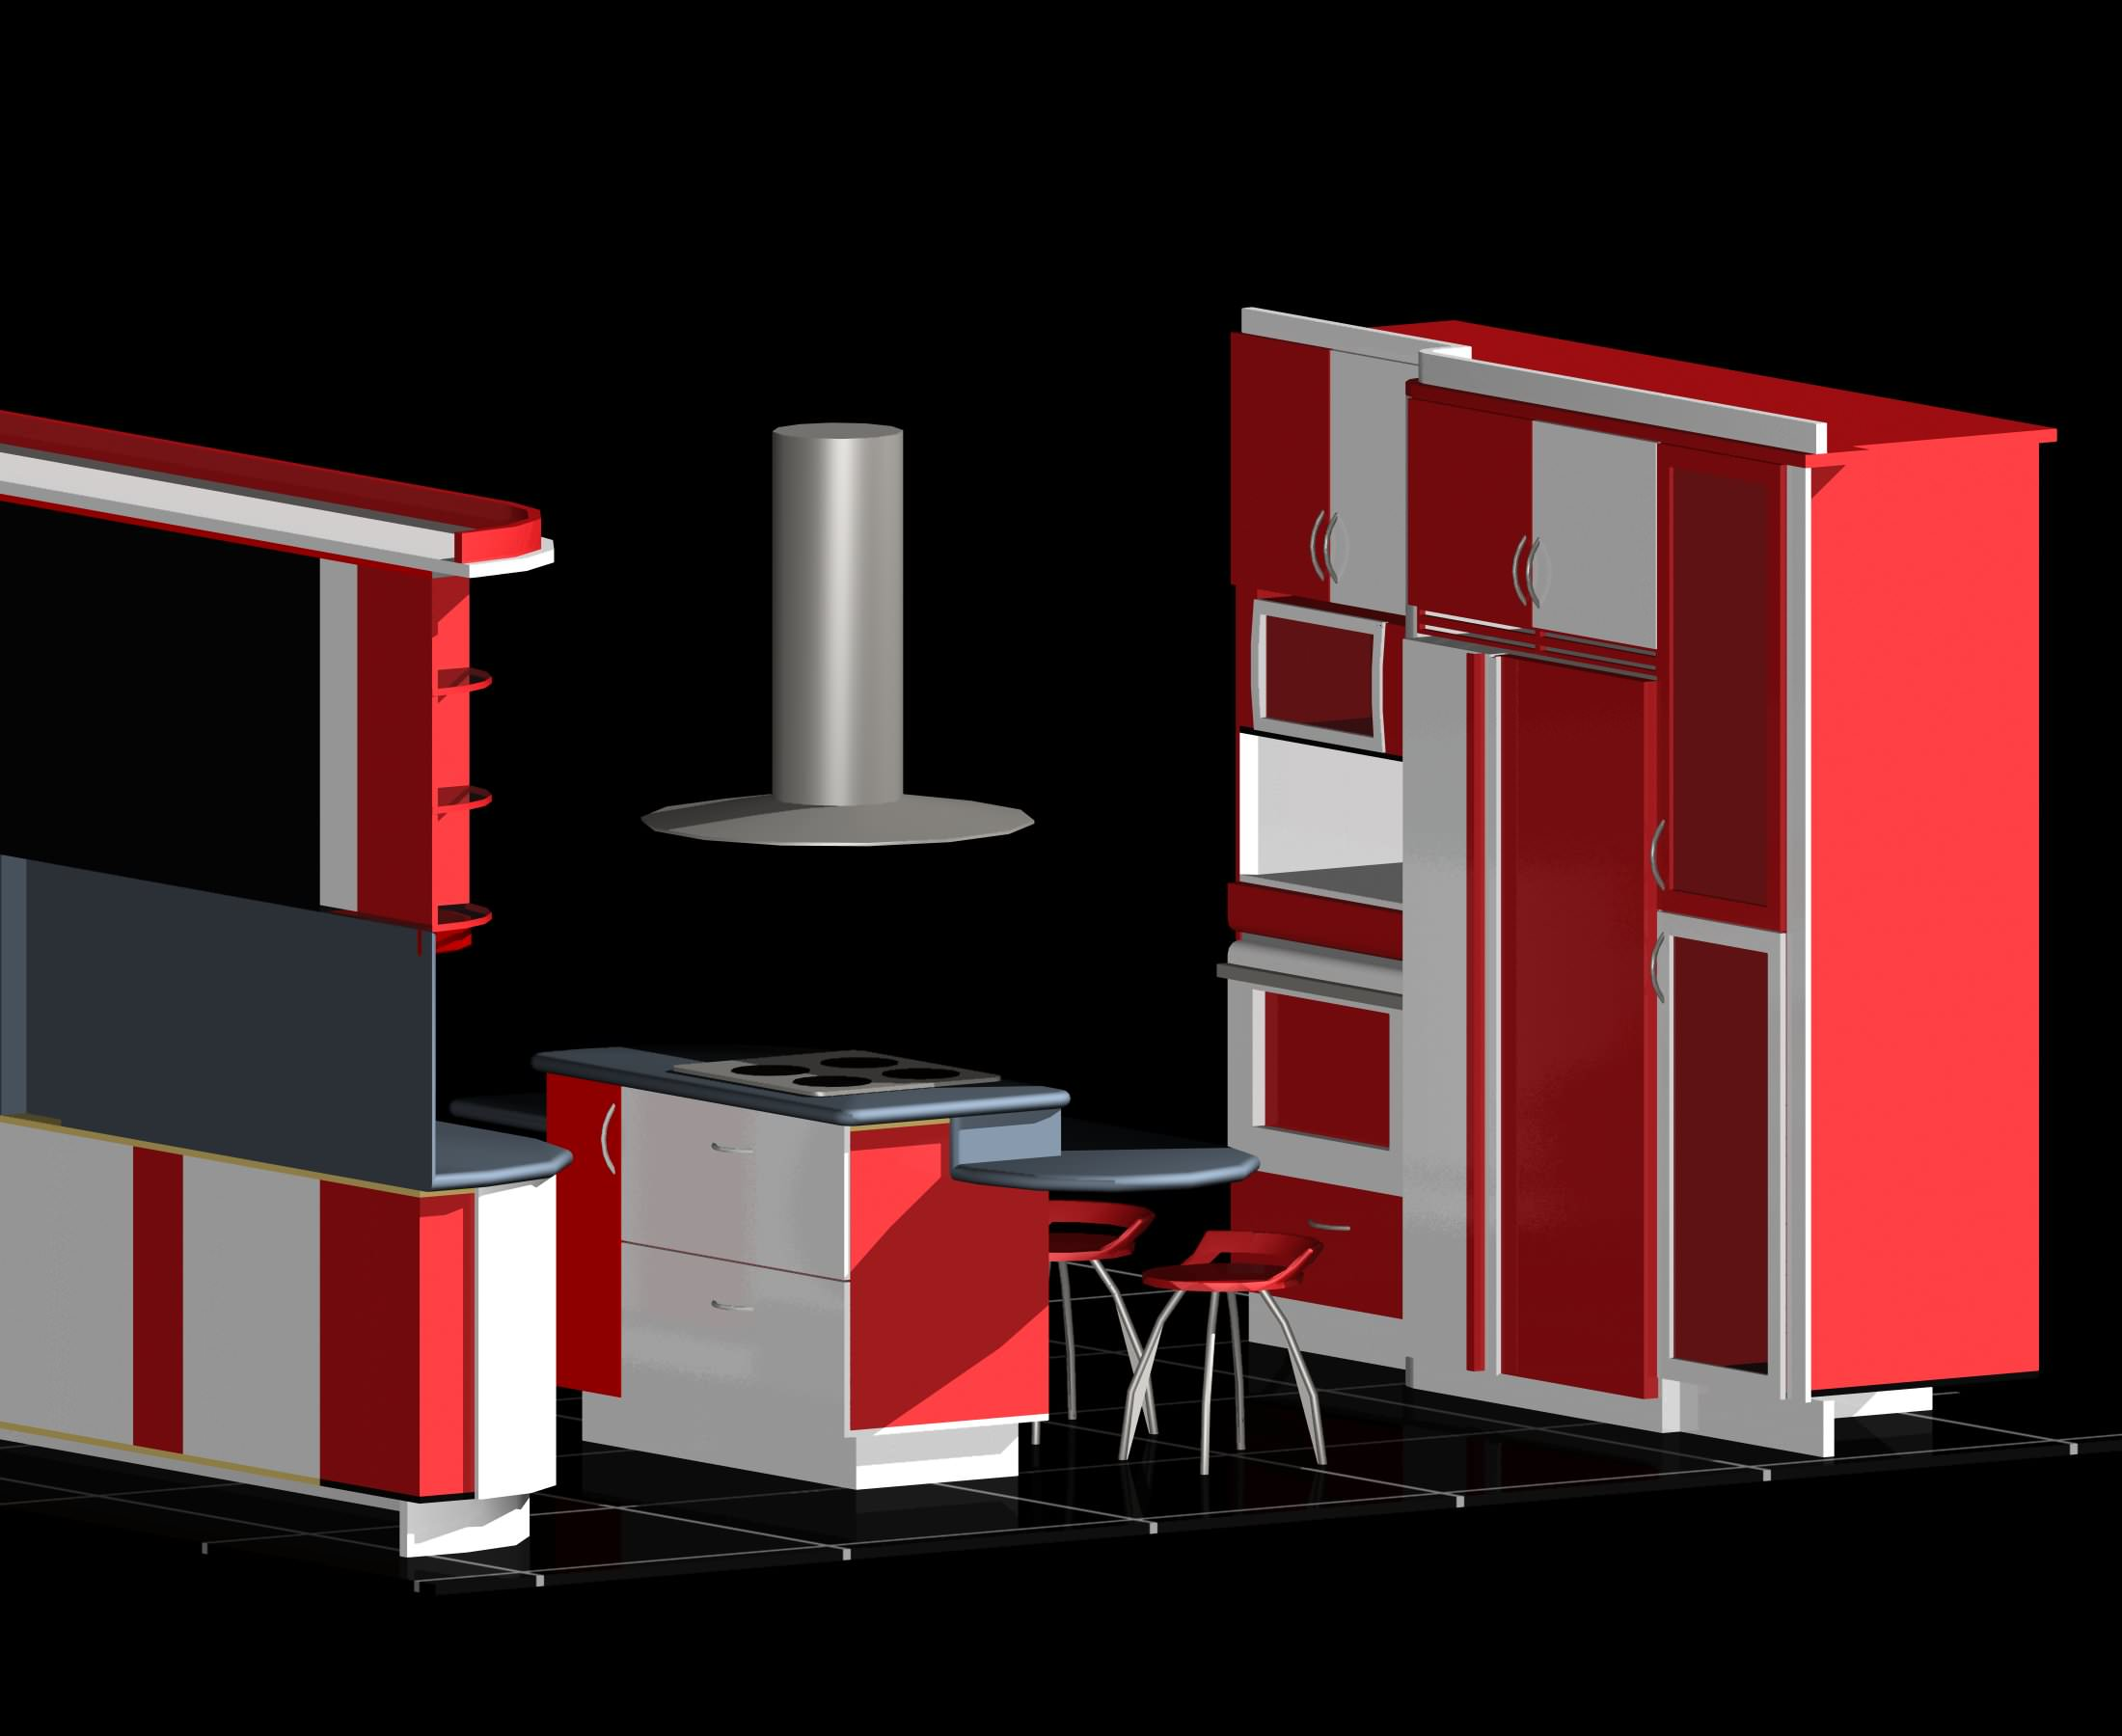 Modular Kitchen Auto Cad 3d Free 3d Model Dwg